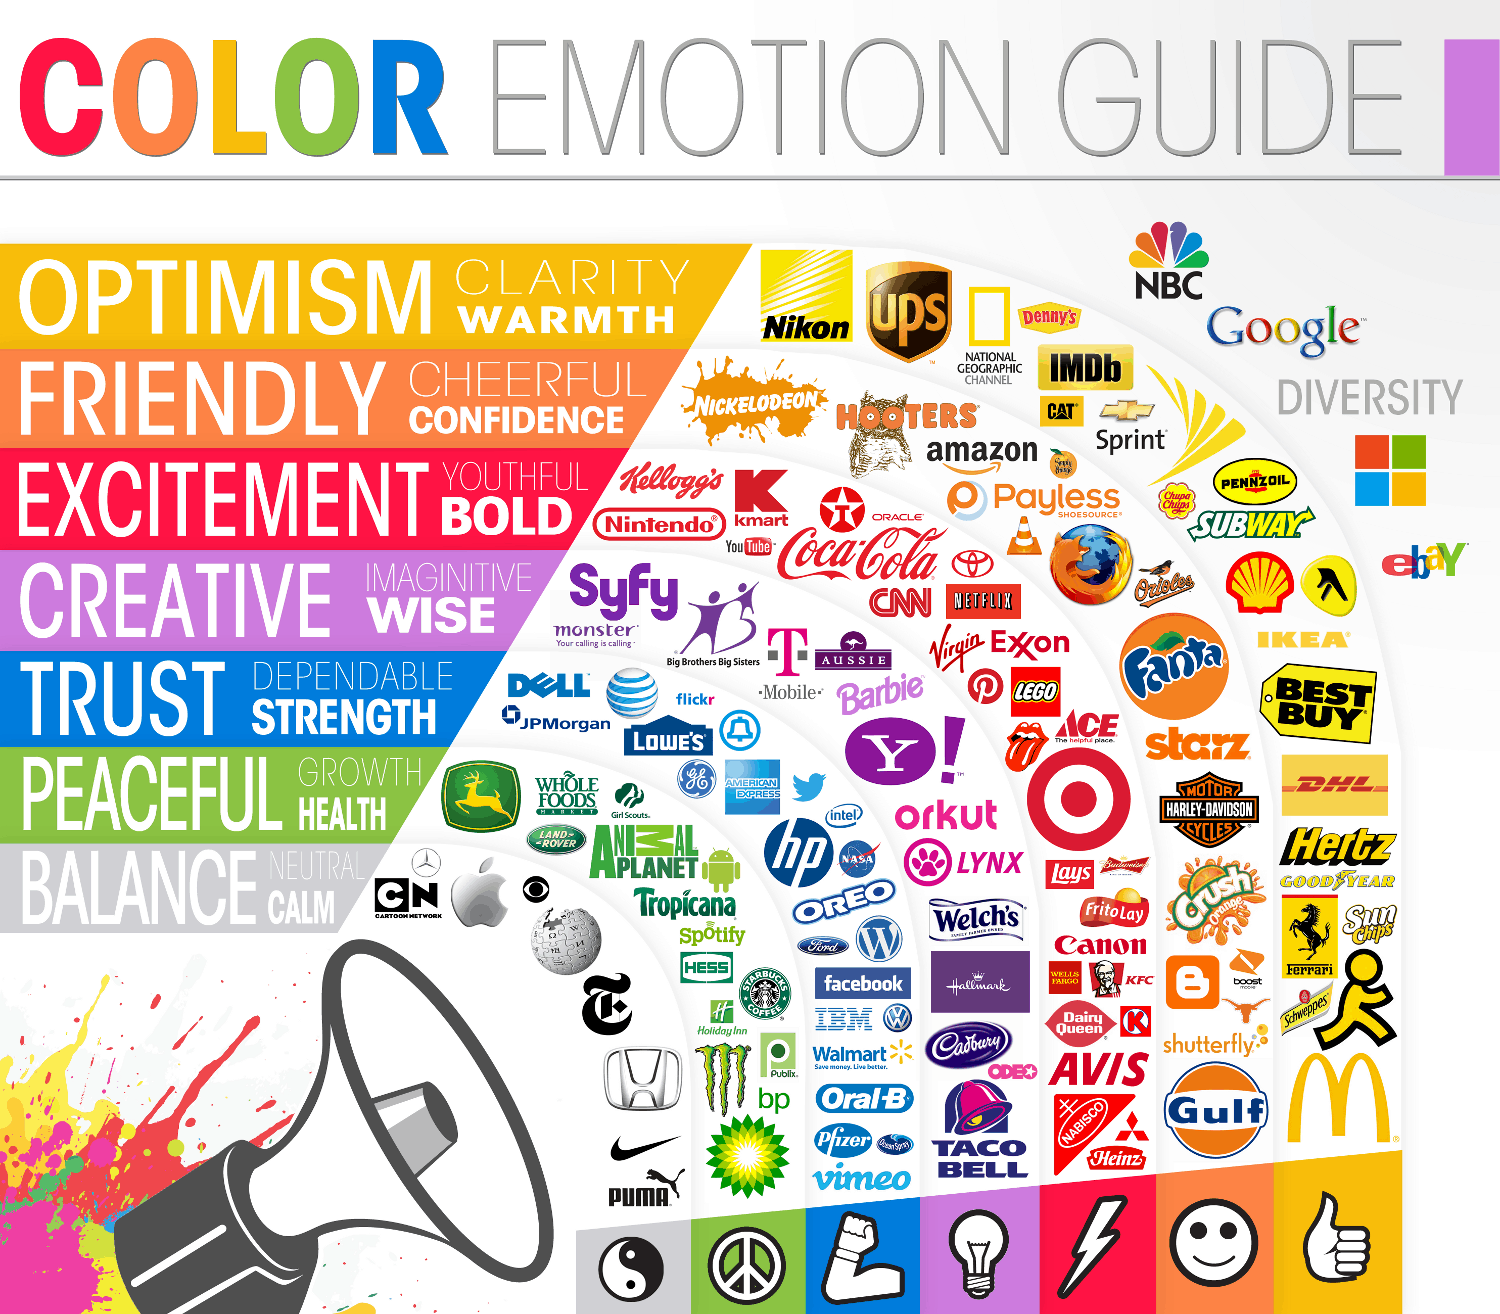 Logos: A Look at the Meaning in Colors